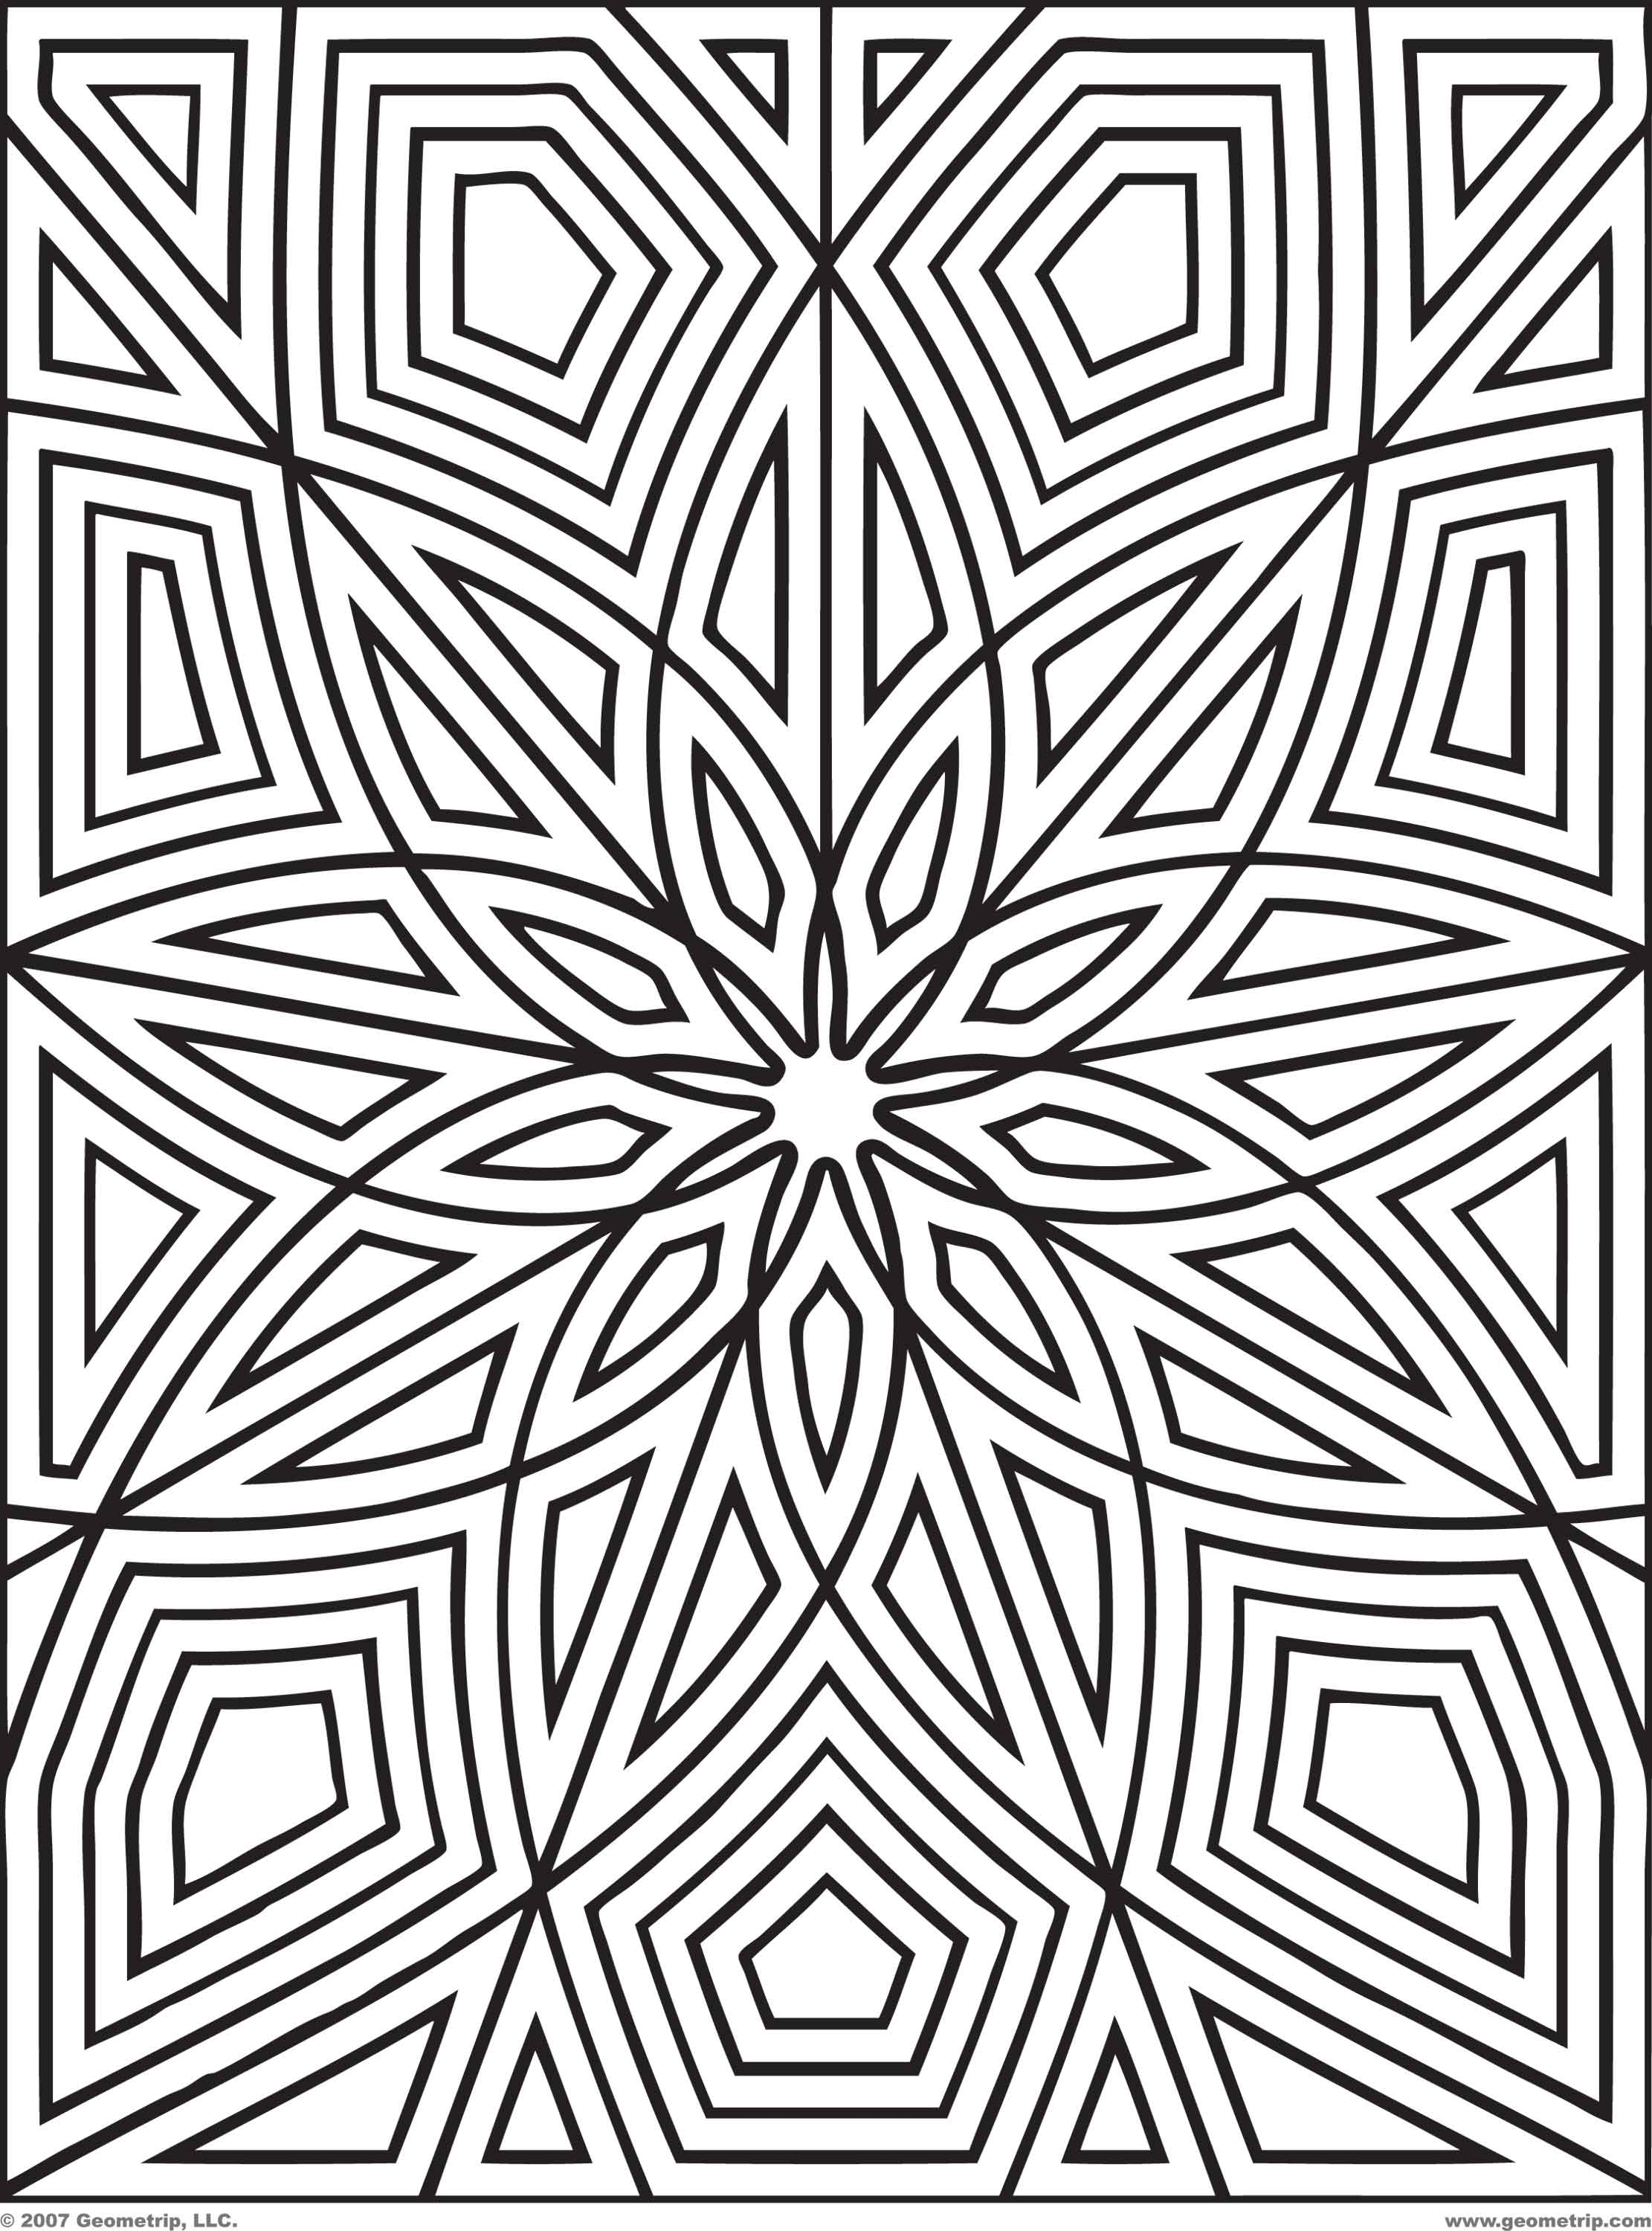 Pattern Coloring Pages - Pattern Coloring Pages for Adults Coloring Home